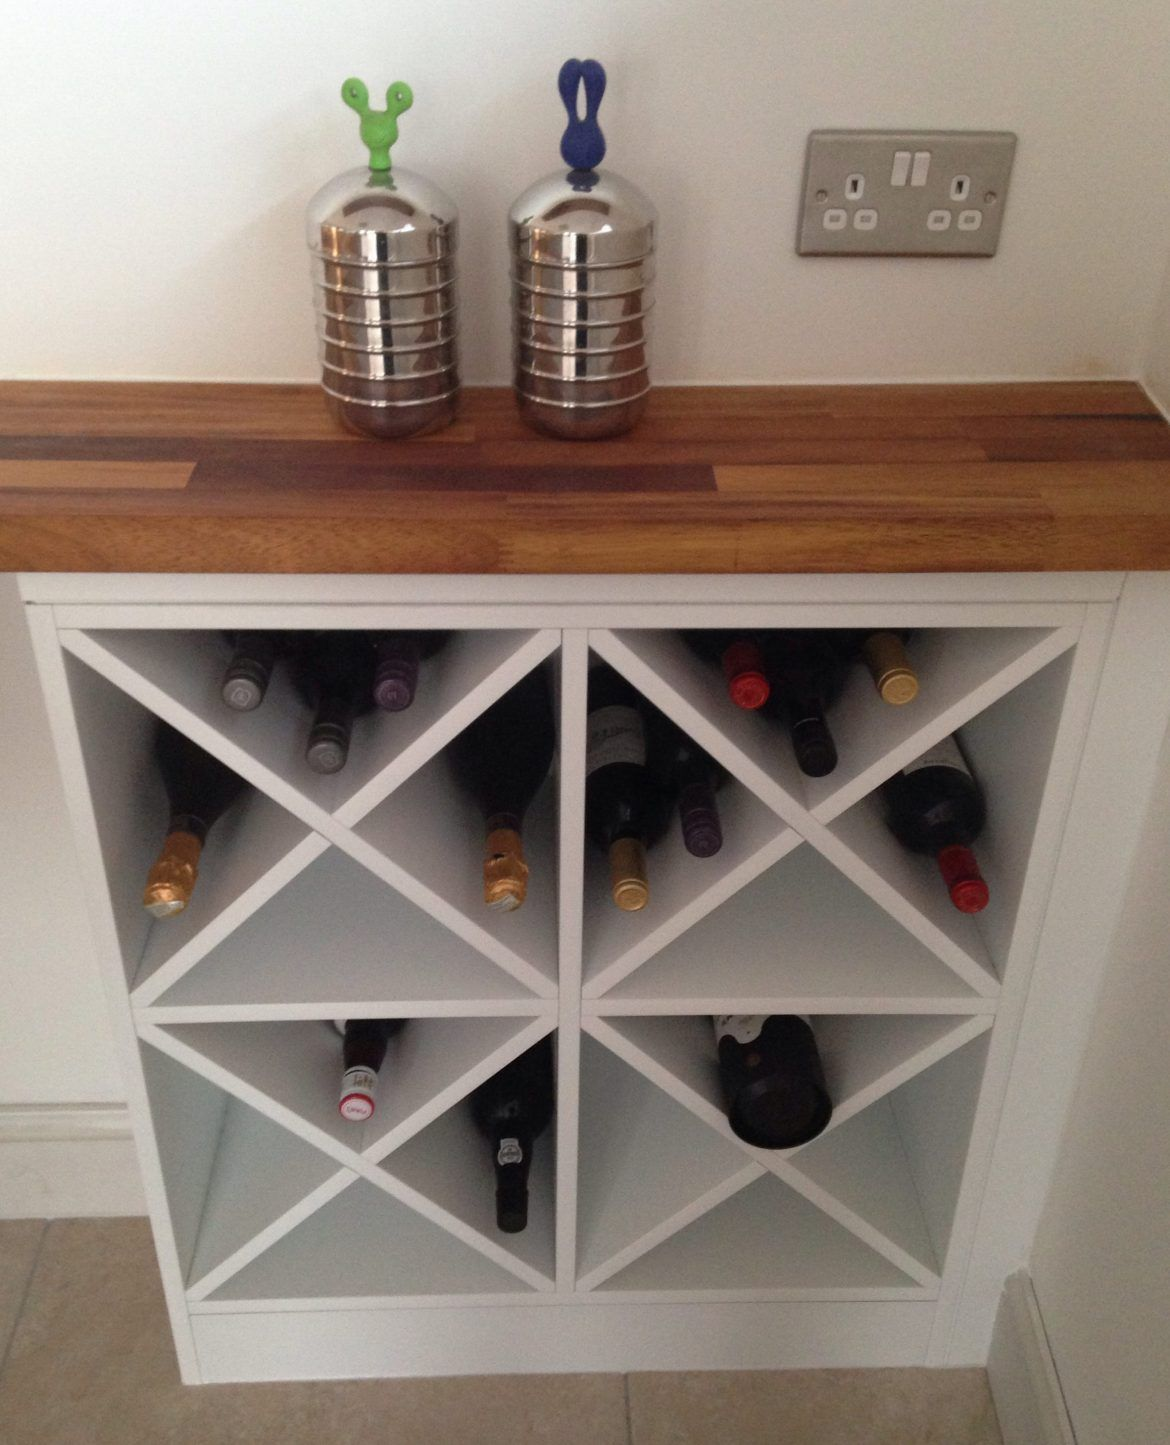 X Shaped Wine Rack Kitchendecor Kitchen Homedecor Interiordecor Decorsnob Wine Rack Cabinet Wine Rack Plans Homemade Wine Rack